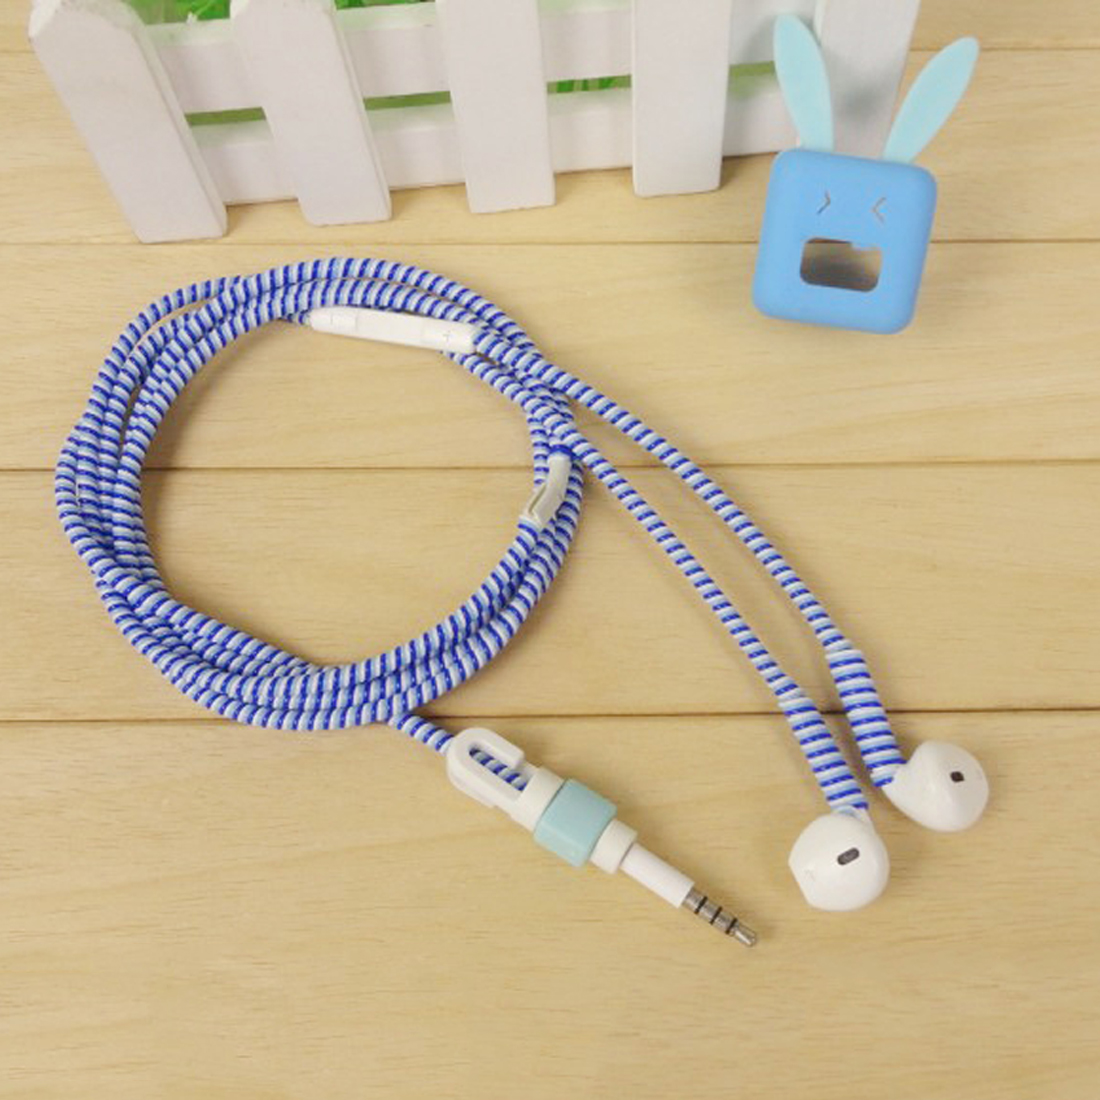 HTB1I7THX0HO8KJjSZFLq6yTqVXa6 Marsnaska 1.5M USB Charging Data Line Cable Protector Wire Cord Protection Wrap Cable Winder Organizer For iPhone For Xiaomi